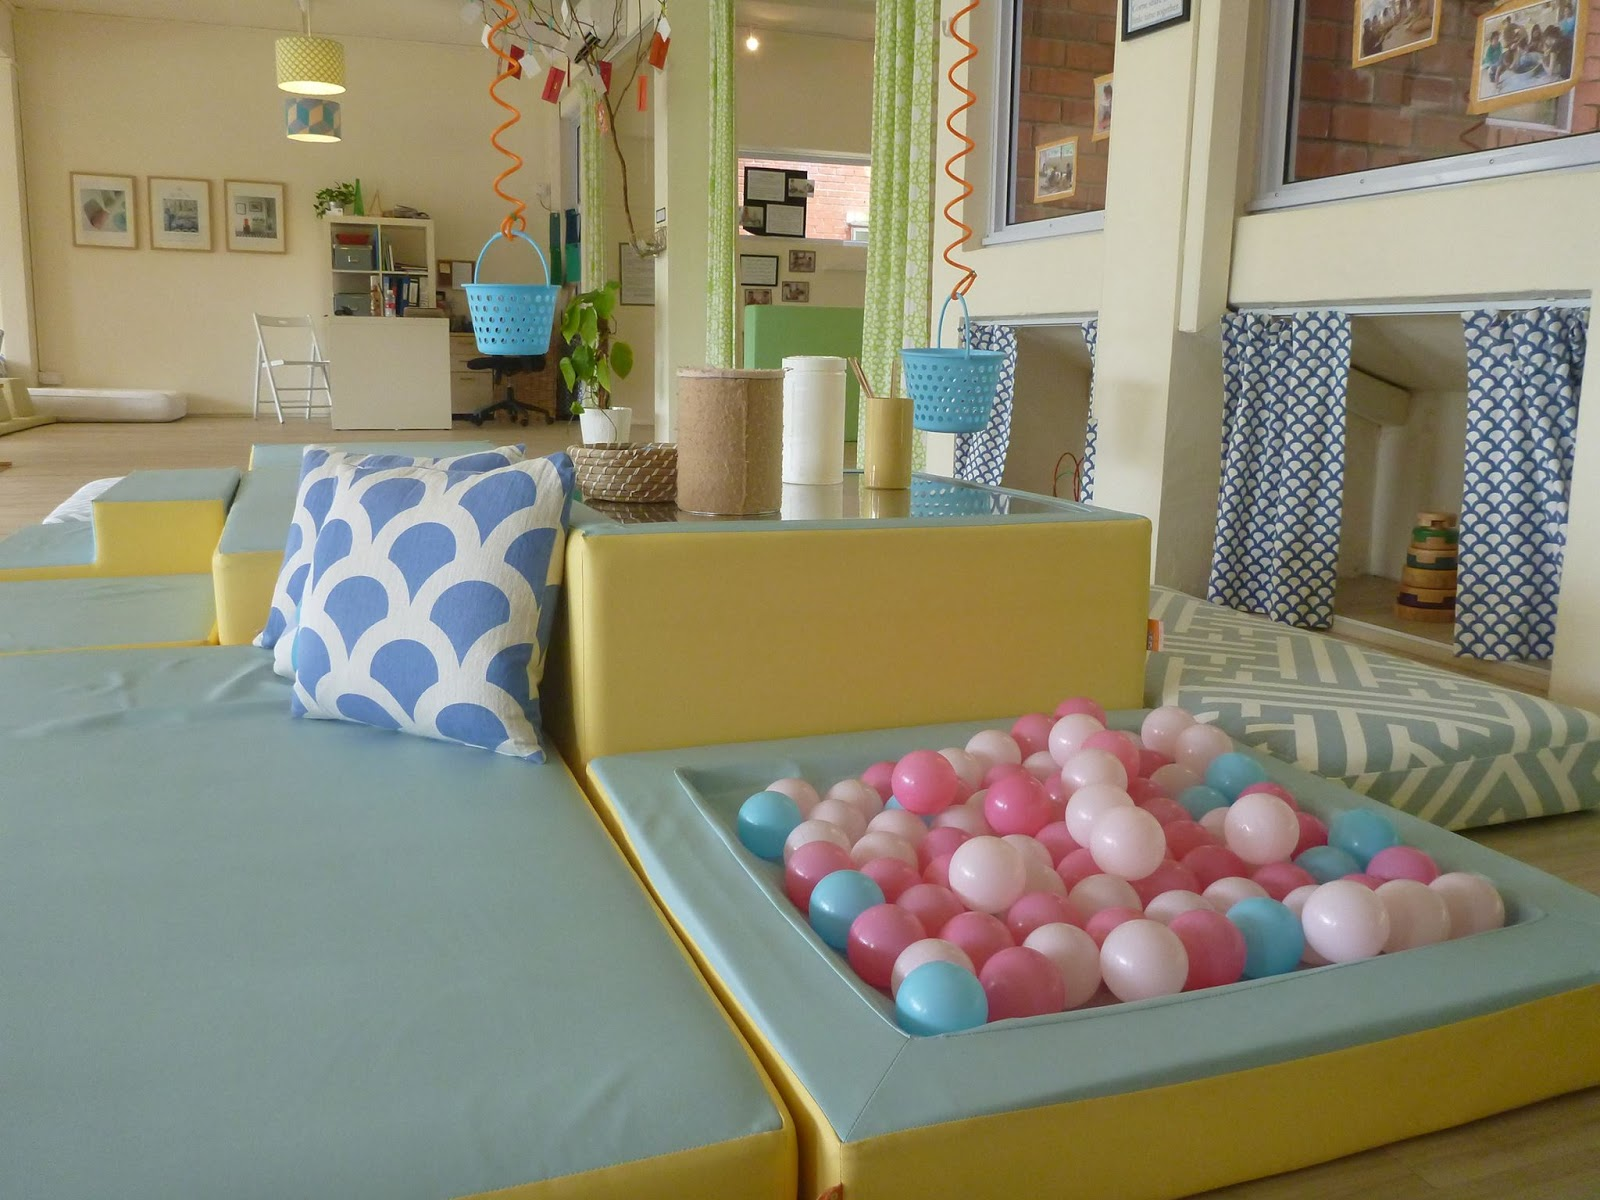 Creating a Baby Play Space ~ scholarshipnations.com : South Africa ...